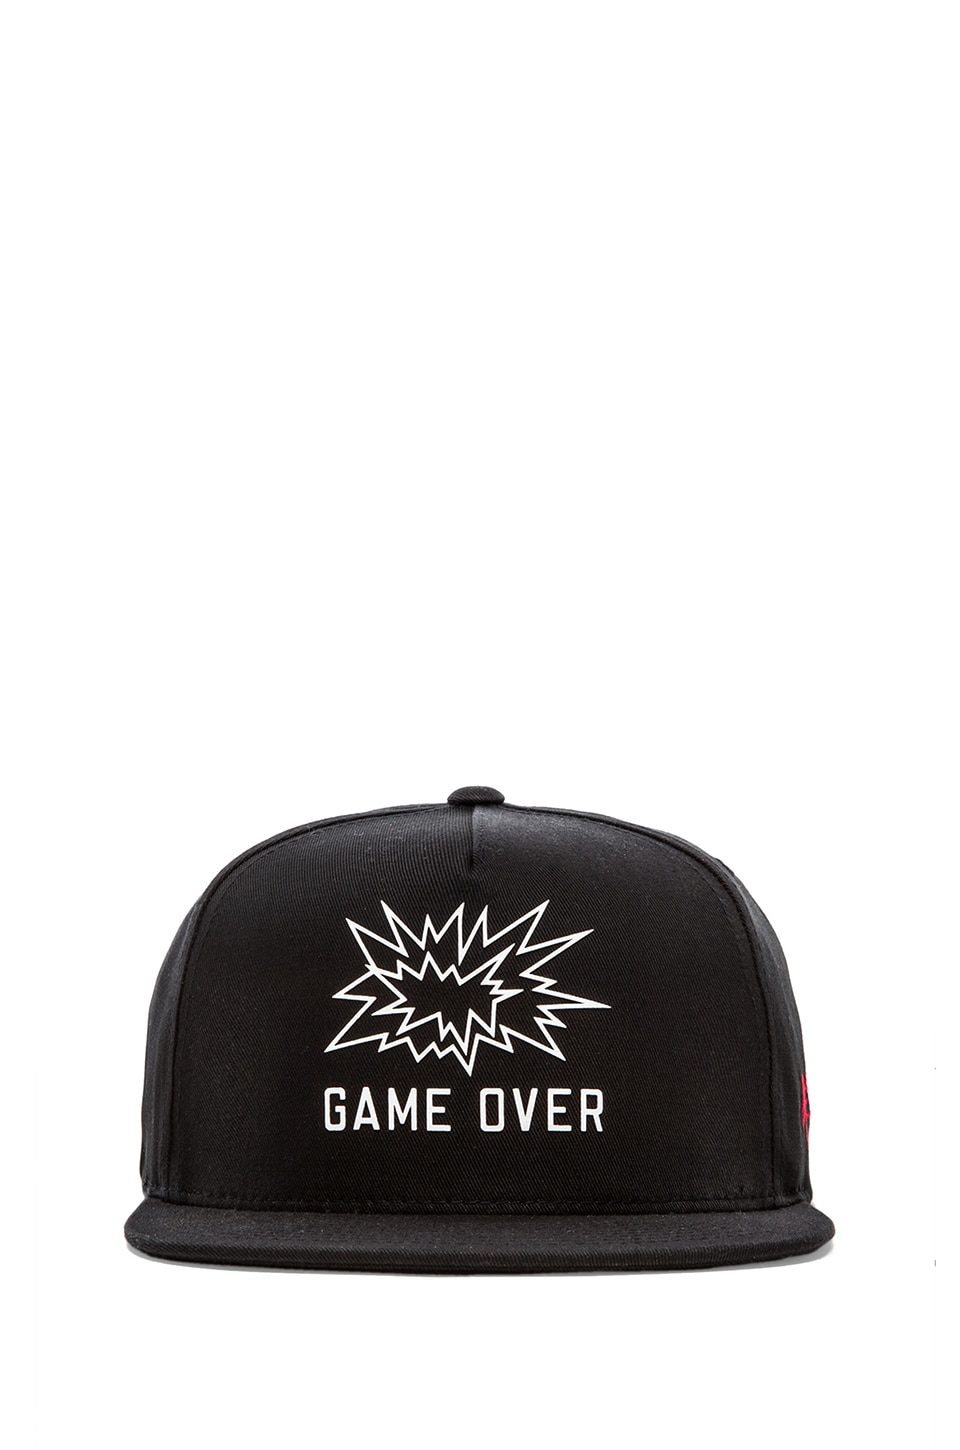 SSUR Game Over Snapback in Black